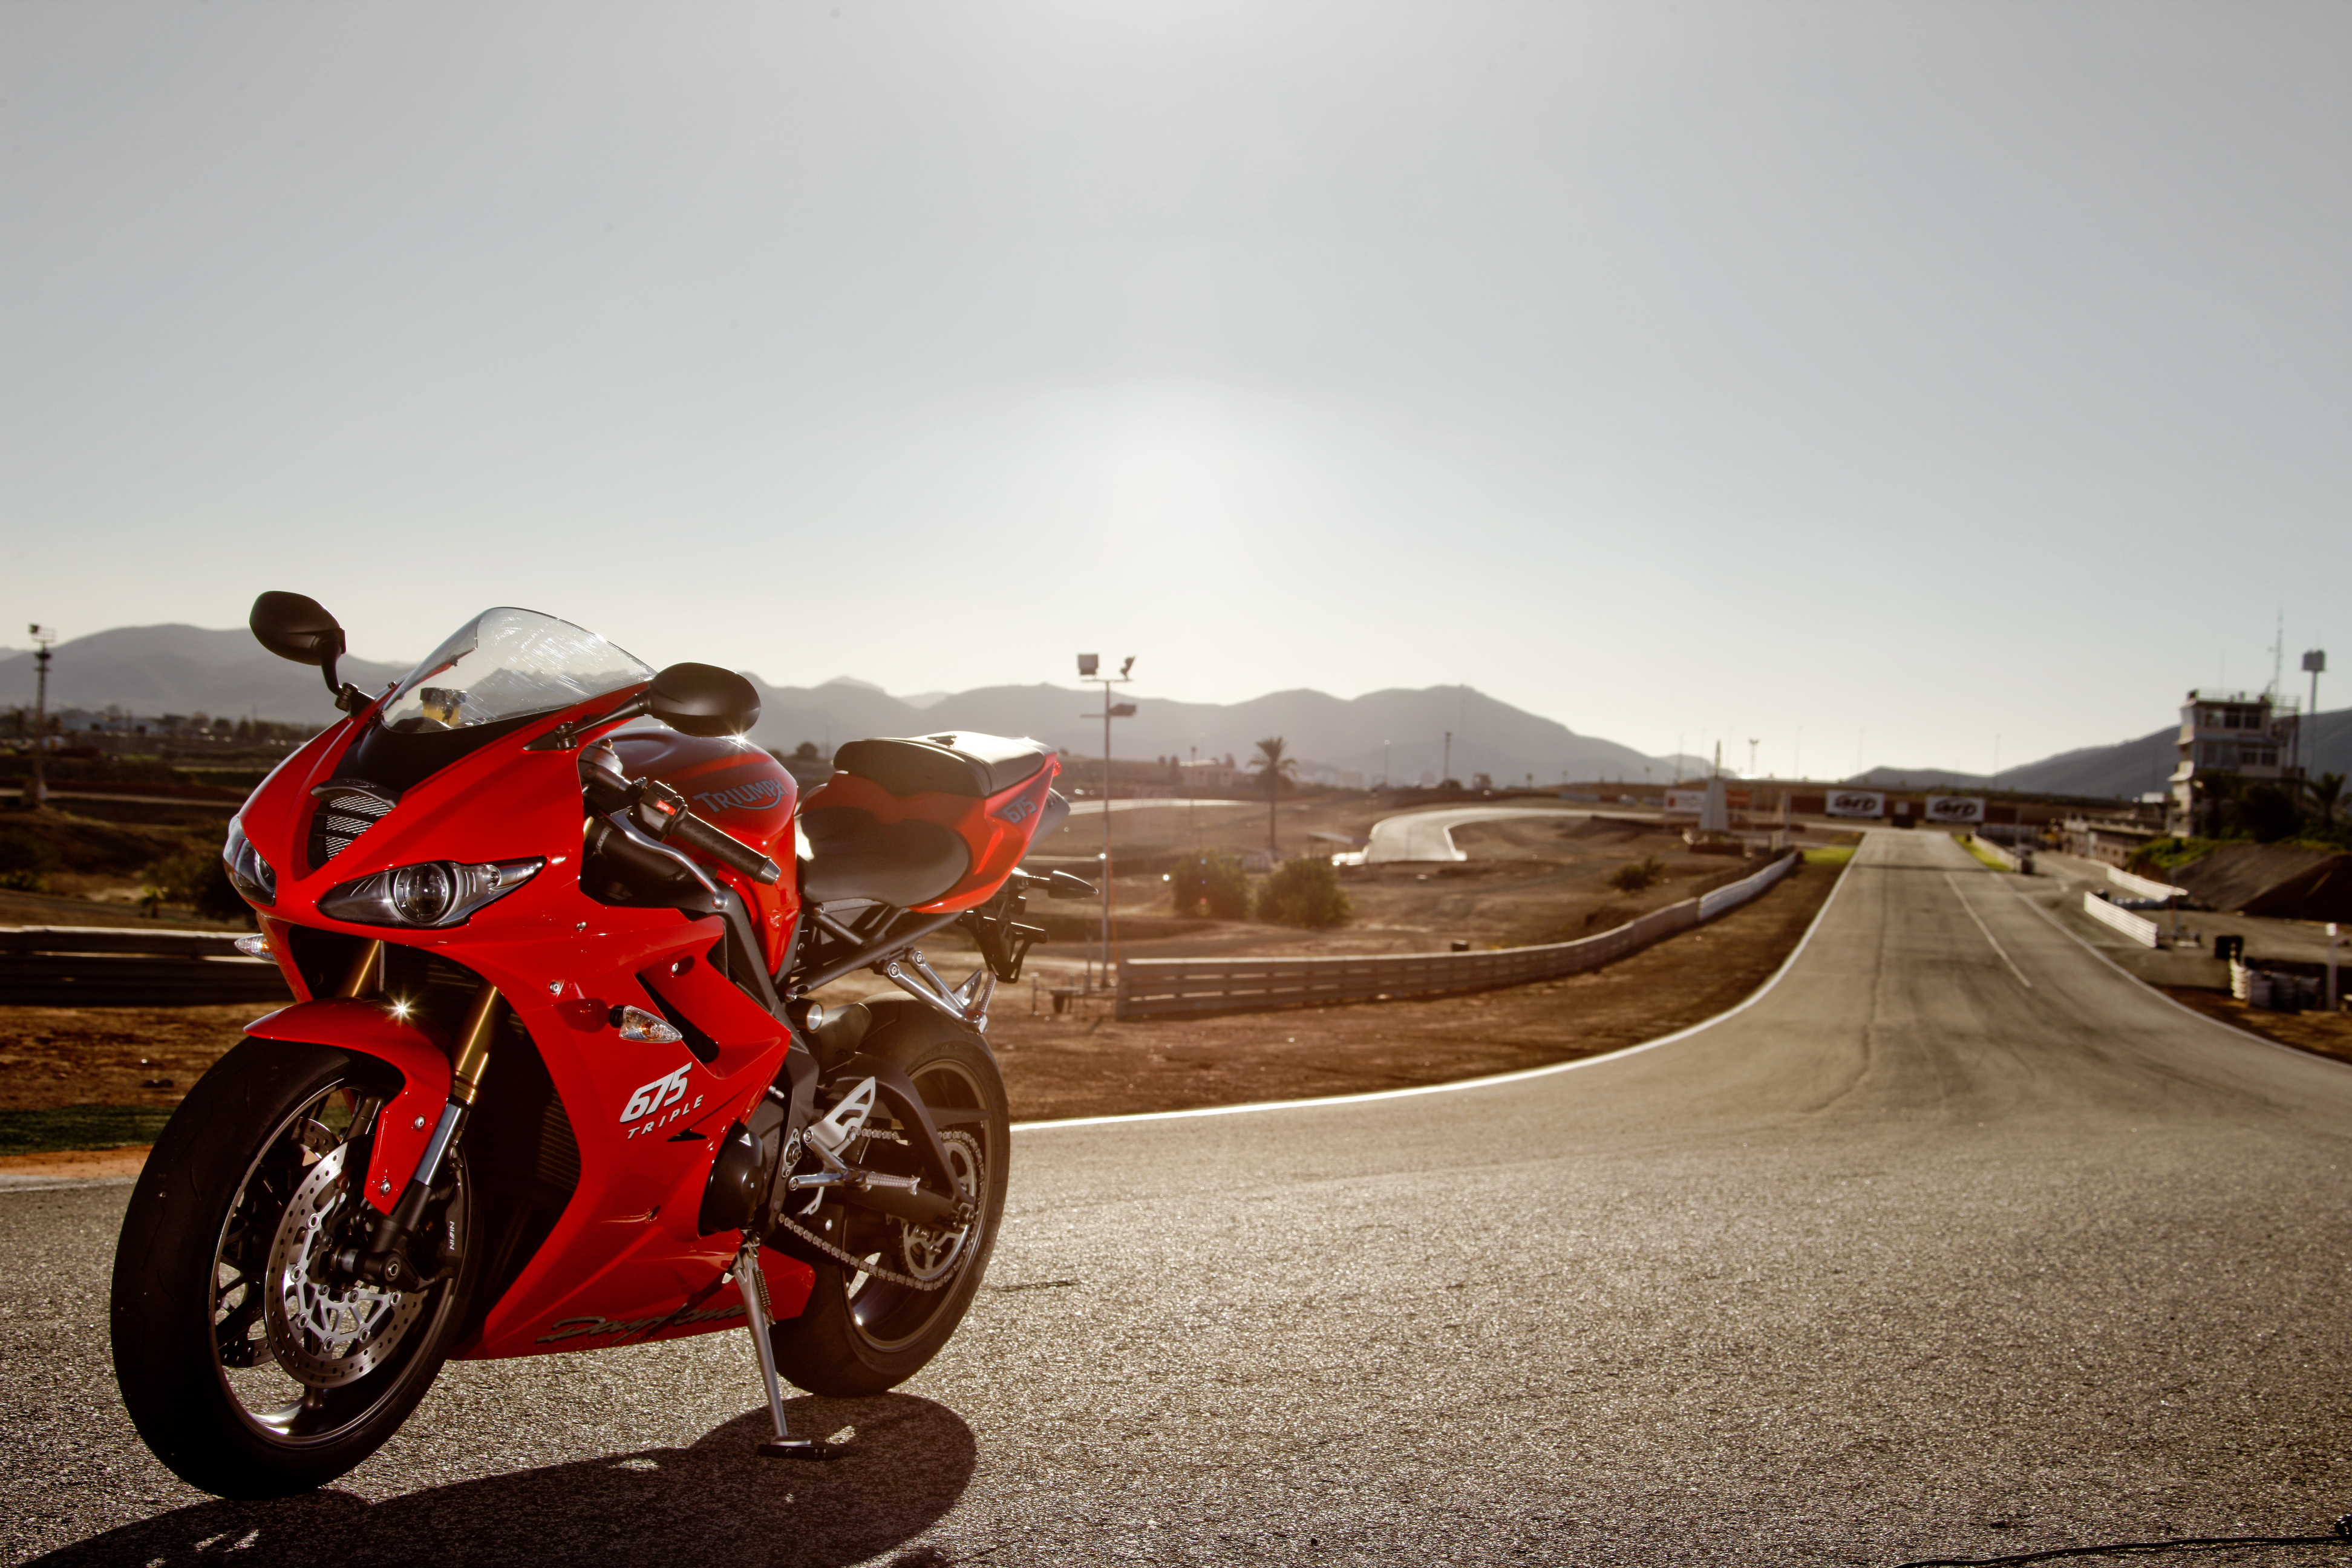 Background Images For Editing Hd Bike: Bike Wallpapers